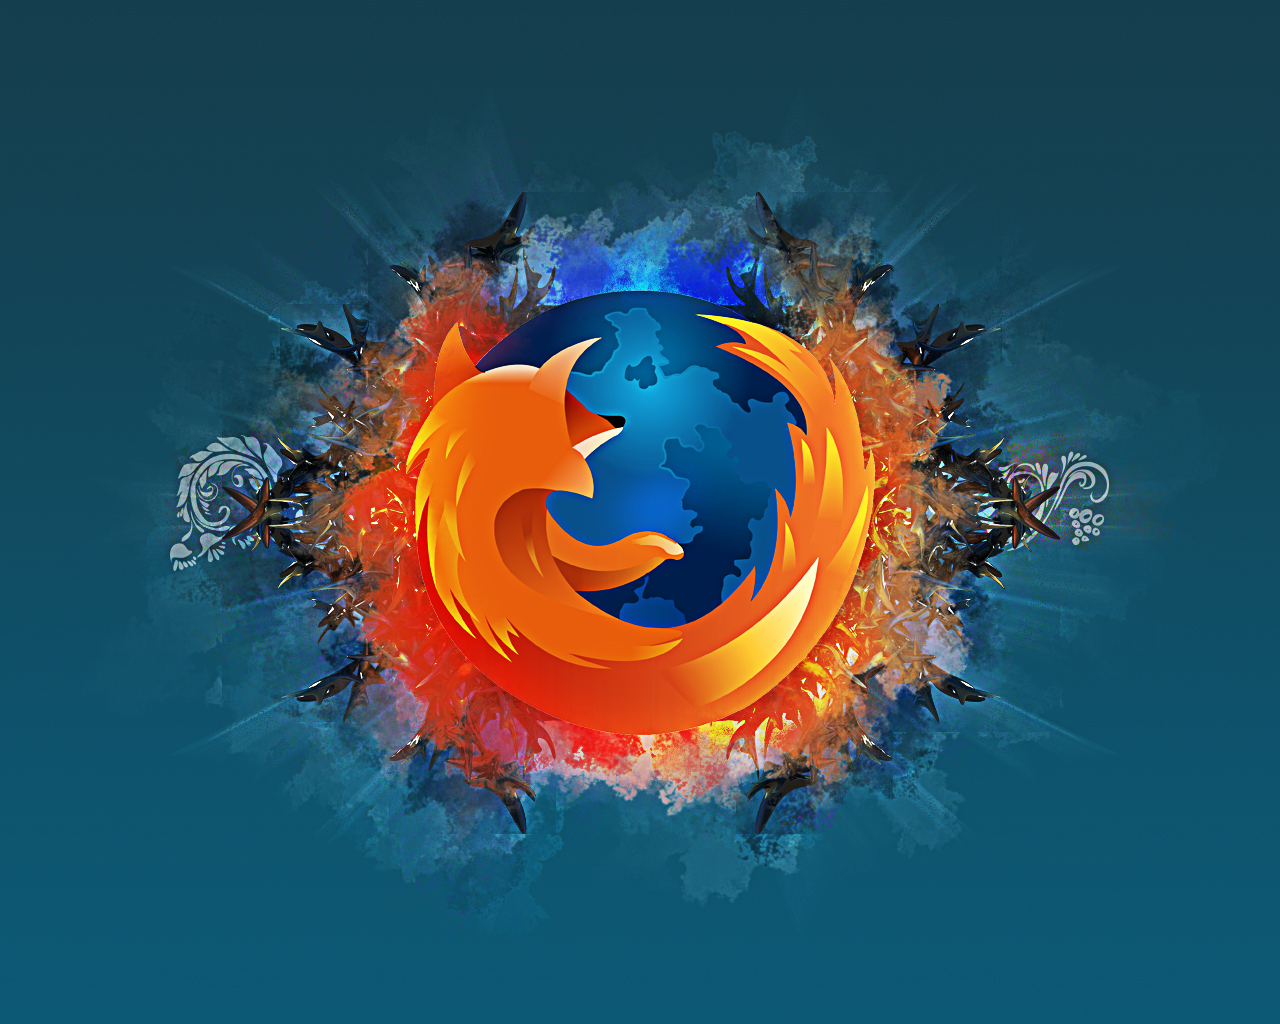 Abstract_Firefox_Wallpaper_by_SteaM10.jpg